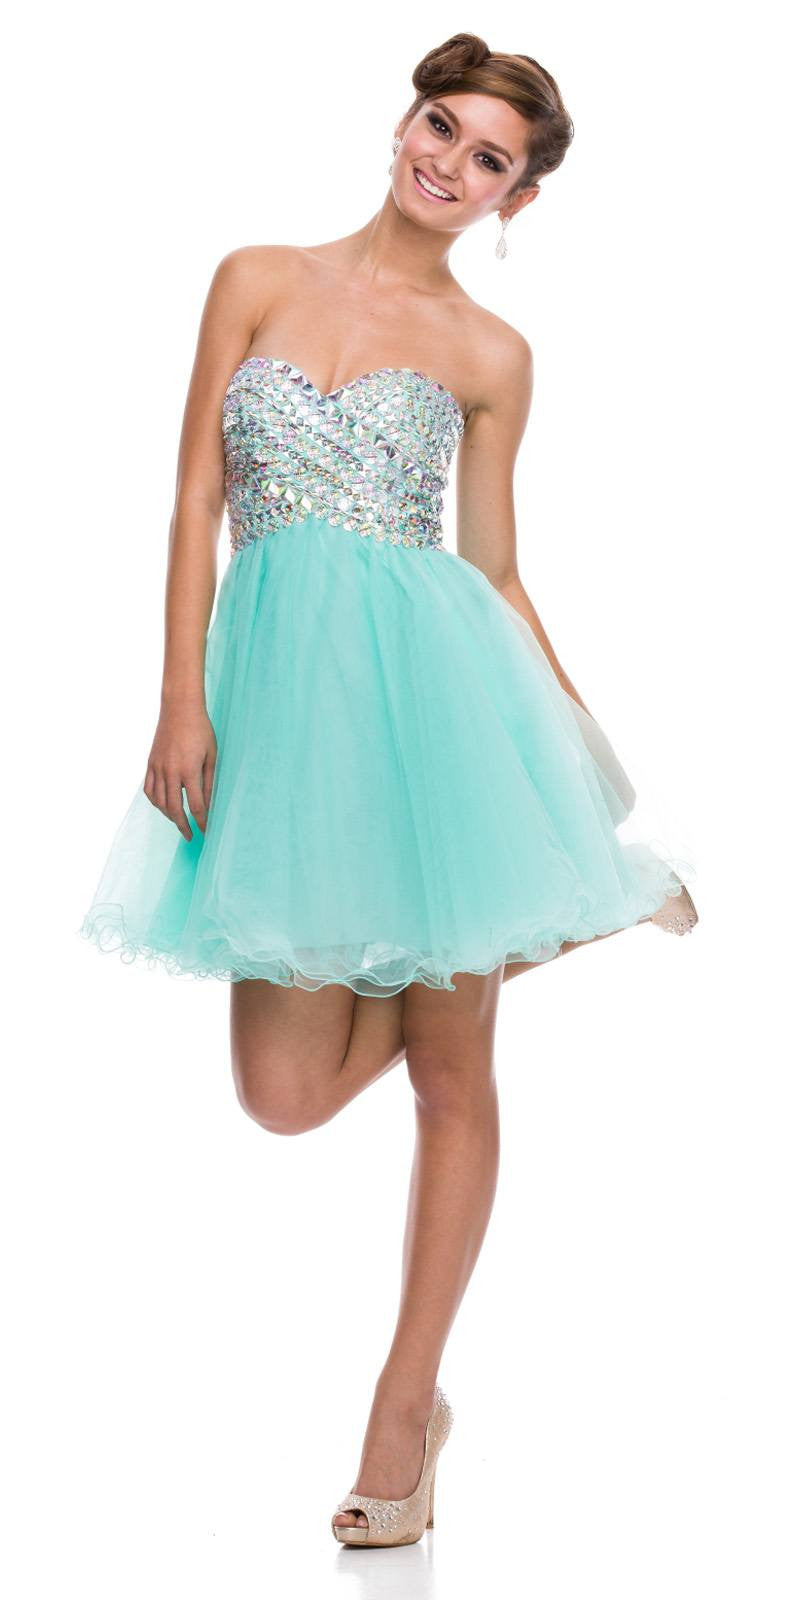 Sweetheart Neckline Strapless Short Prom Dress Rhinestone Bodice ...